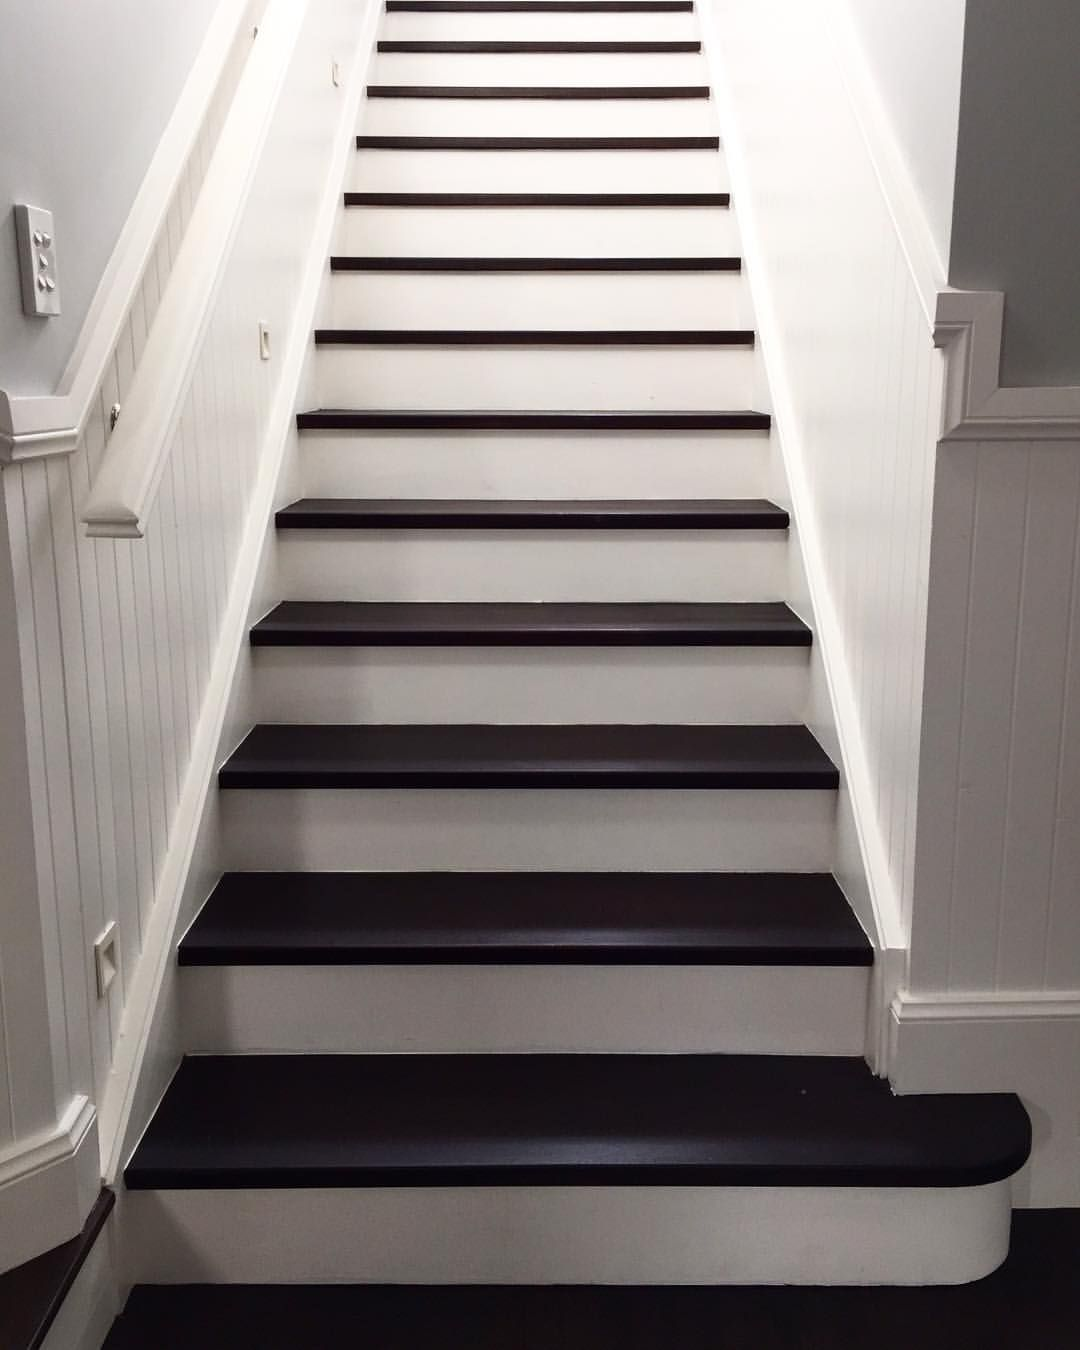 A Beautiful Effect Achieved By Staining The Treads And Painting The Risers.  #stairs #stairway #entry #wainscotting #hallway #interior #design